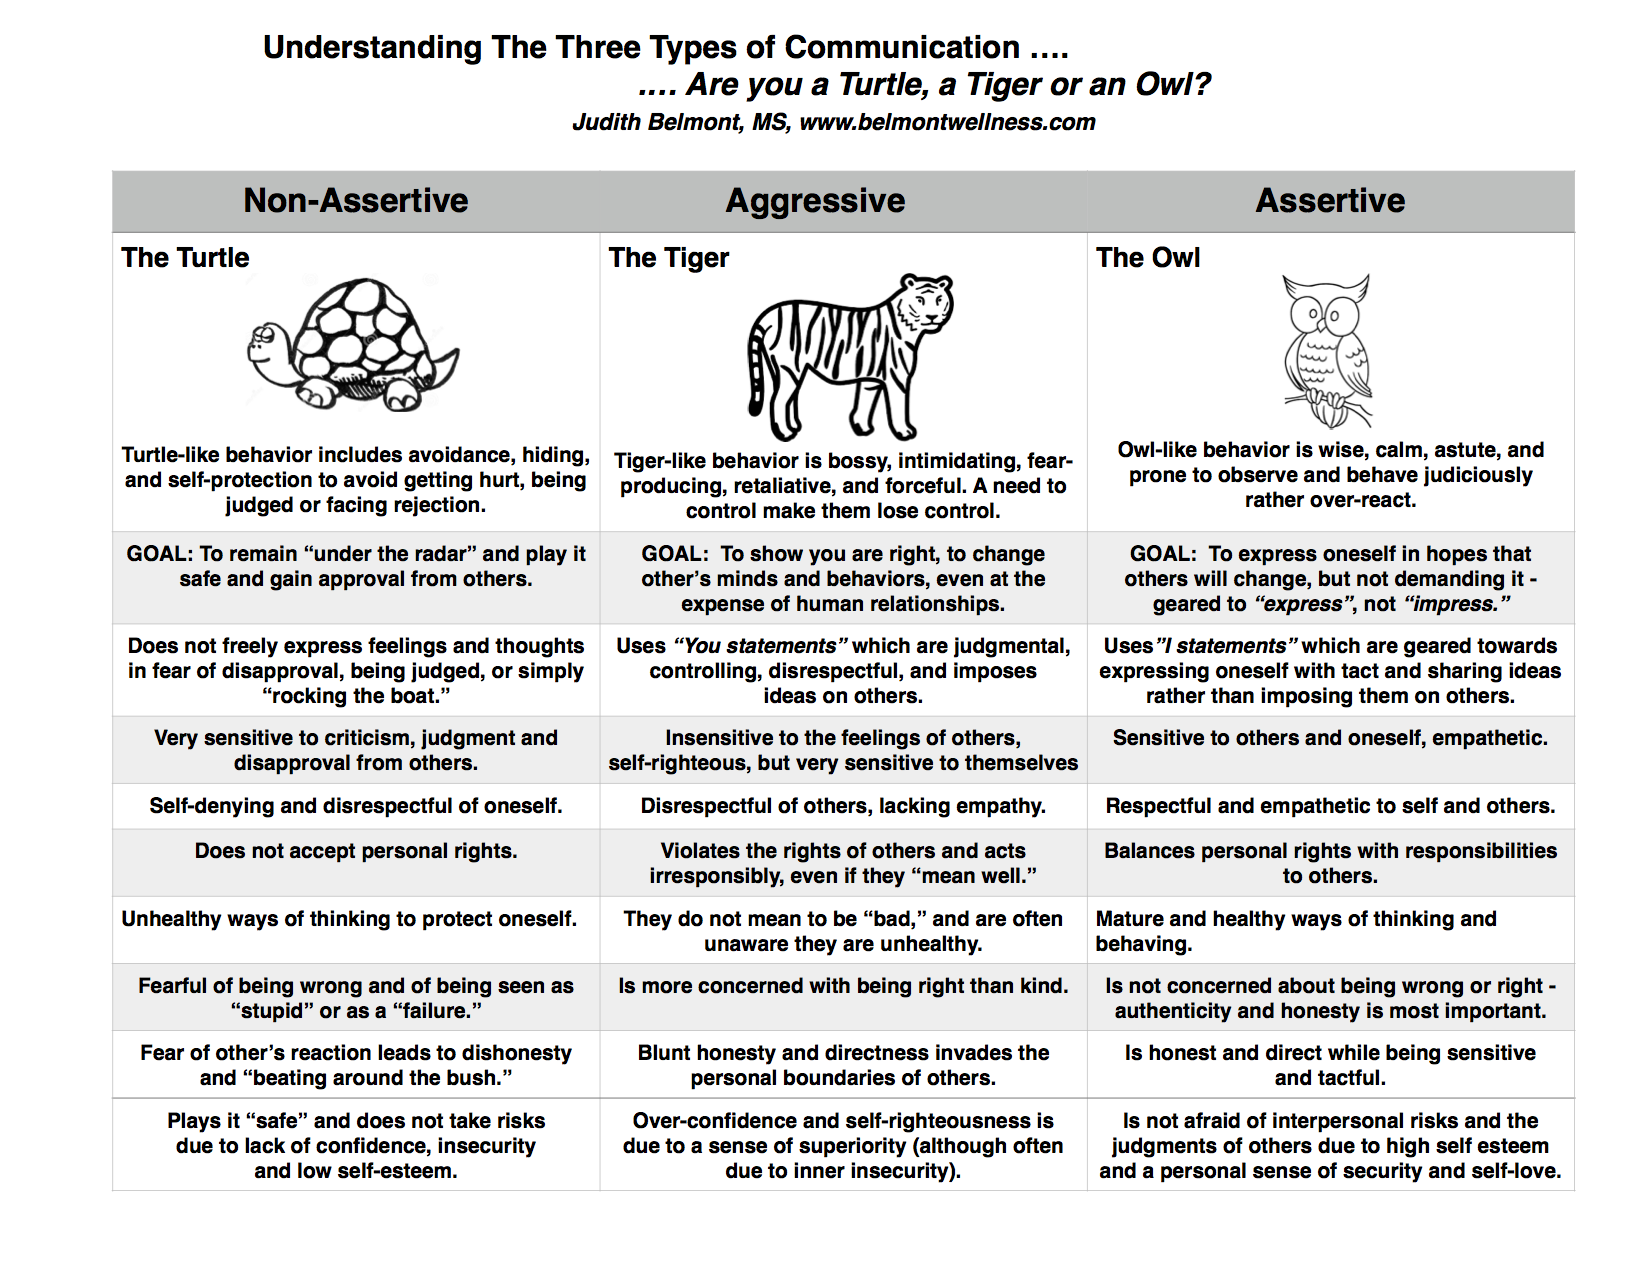 Uncategorized Assertive Communication Worksheet are you a turtle tiger or an owl mental health experiences psychoeducational handouts quizzes and group activities therapy activitiescommunication activitiestherapy worksheetstherap